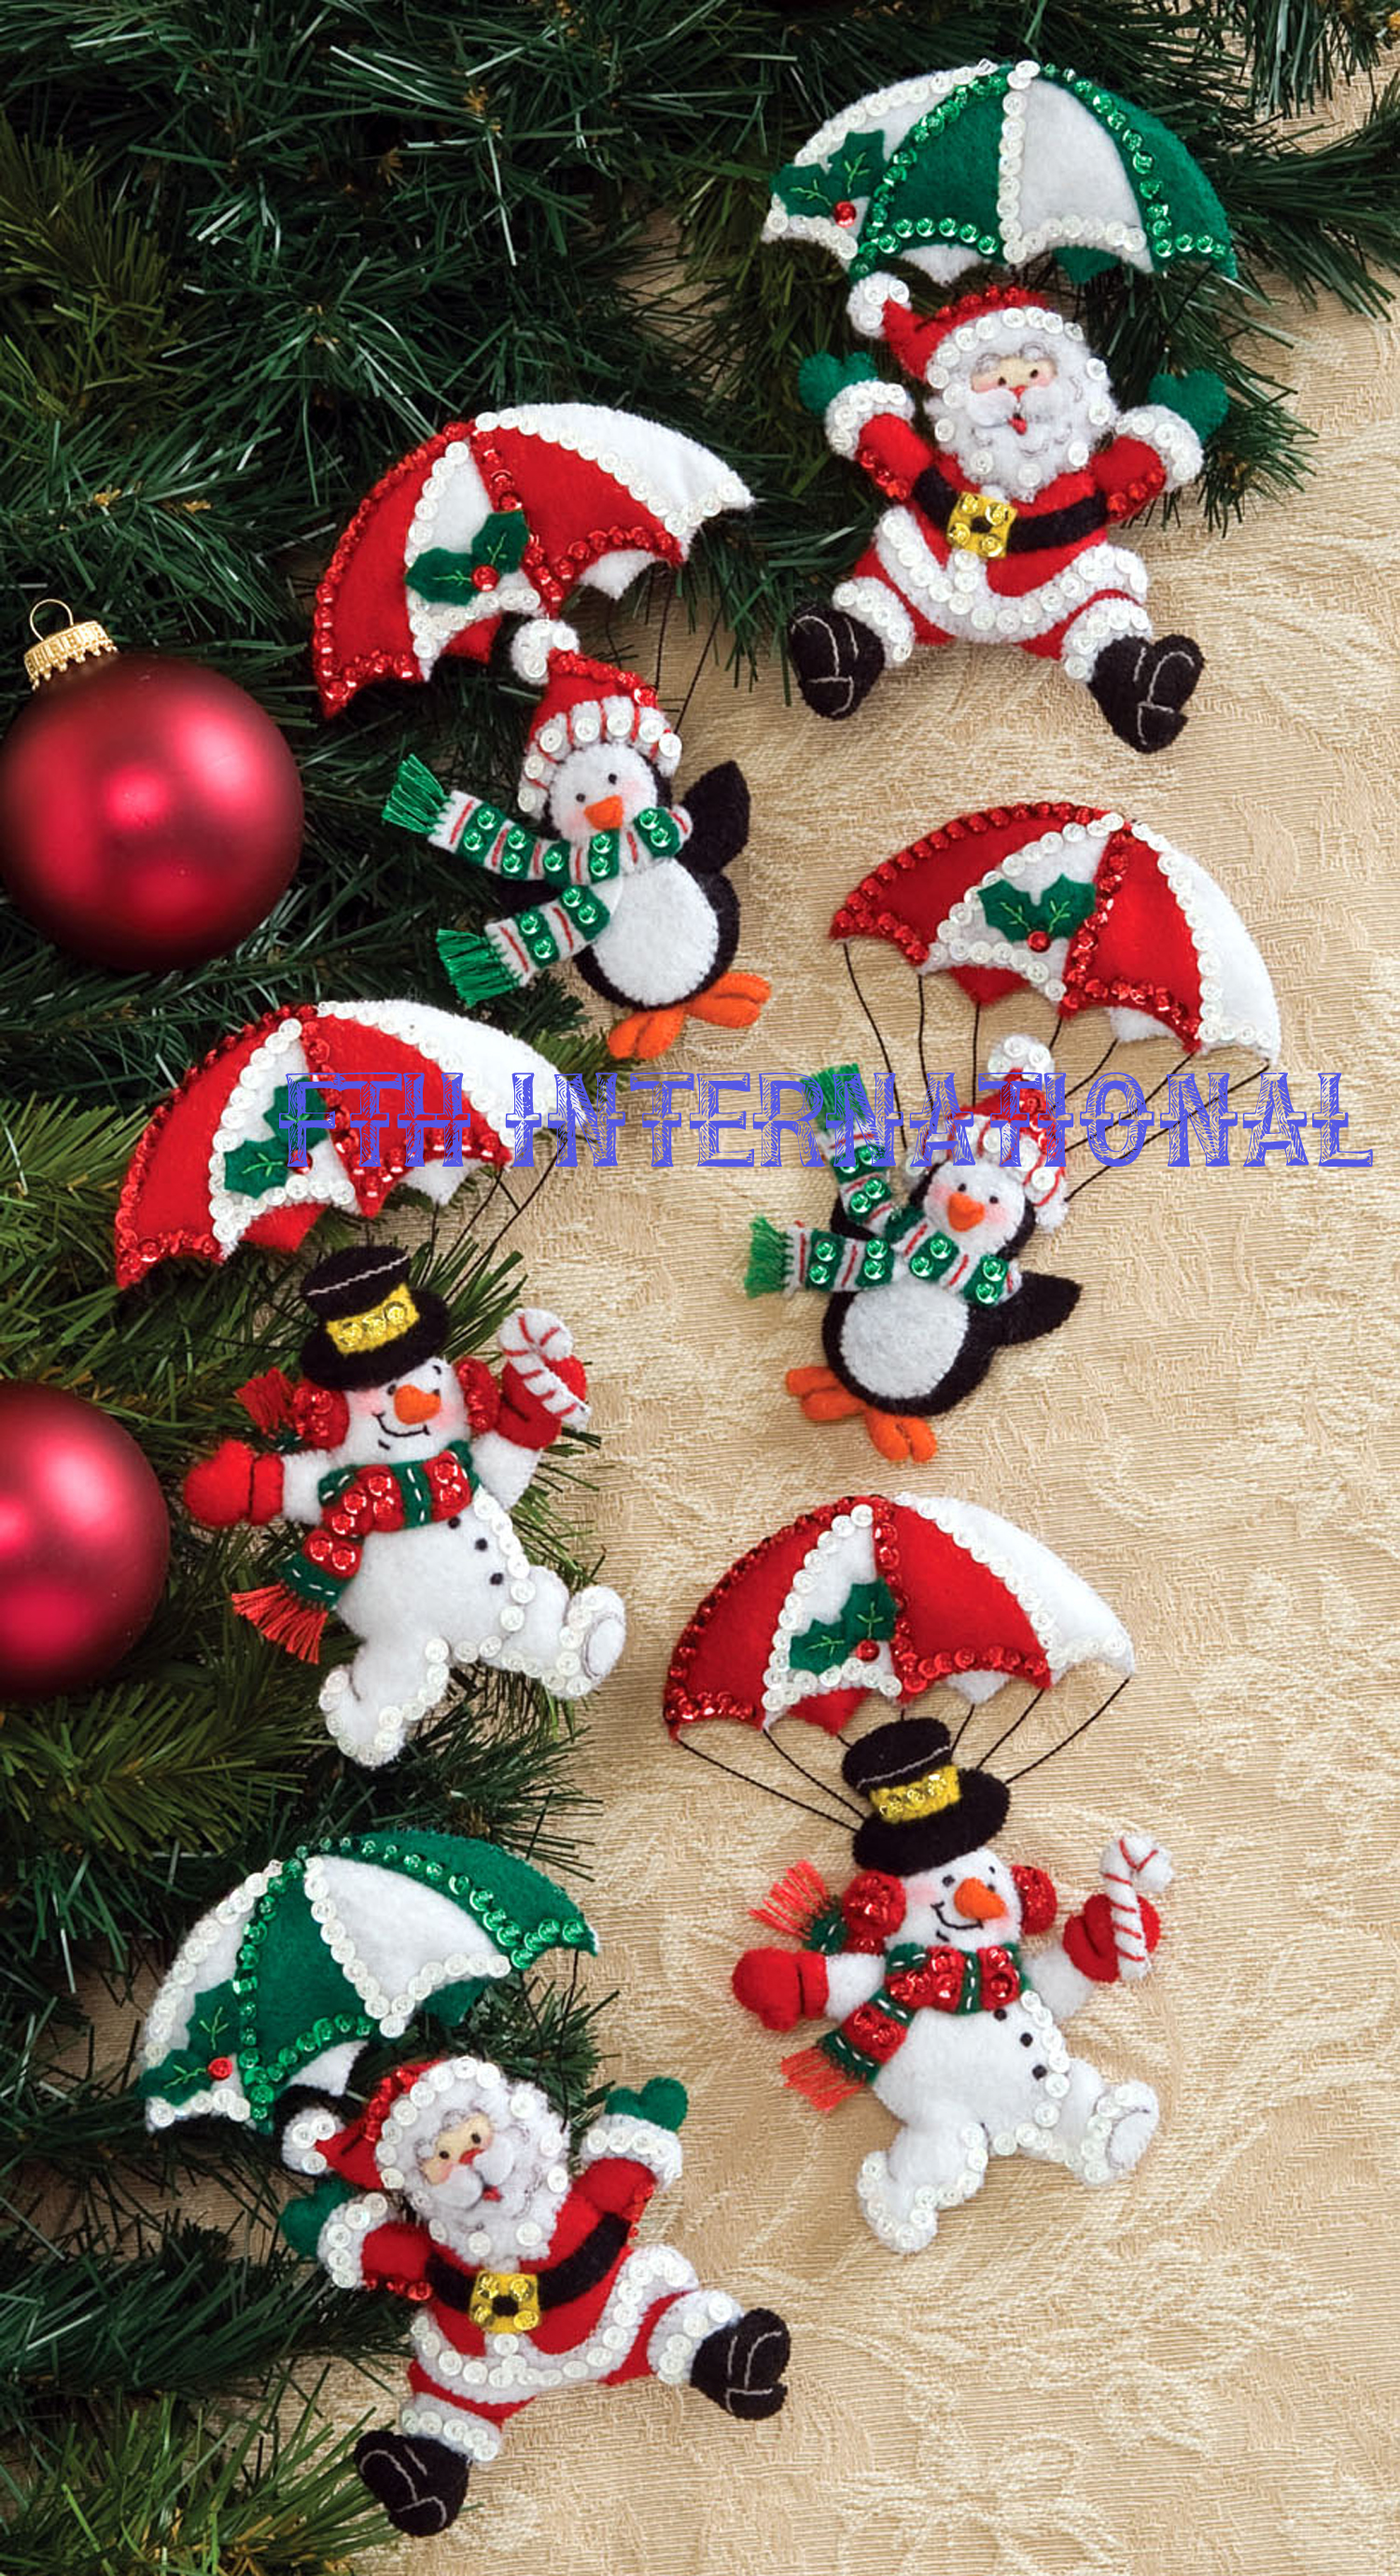 12 Days of Christmas Bucilla Felt Ornament Kit #86066 ...